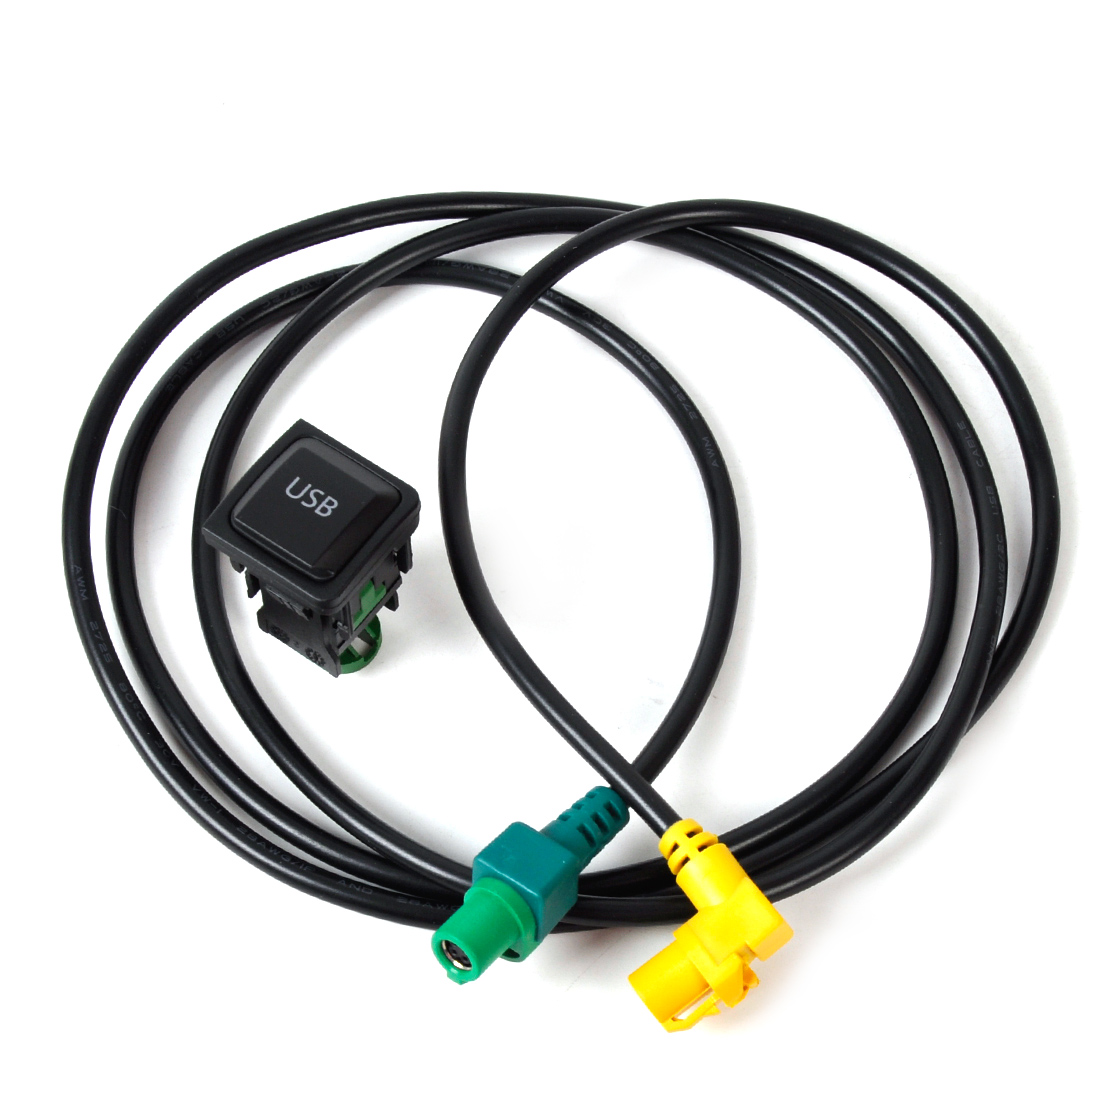 Beler <font><b>USB</b></font> Switch Kabel für <font><b>VW</b></font> Golf Jetta SCIROCCO Polo Touran EOS Tiguan CC Käfer 2005 2006 2007 2008-2013 <font><b>RCD510</b></font> RNS315 RCD300 image